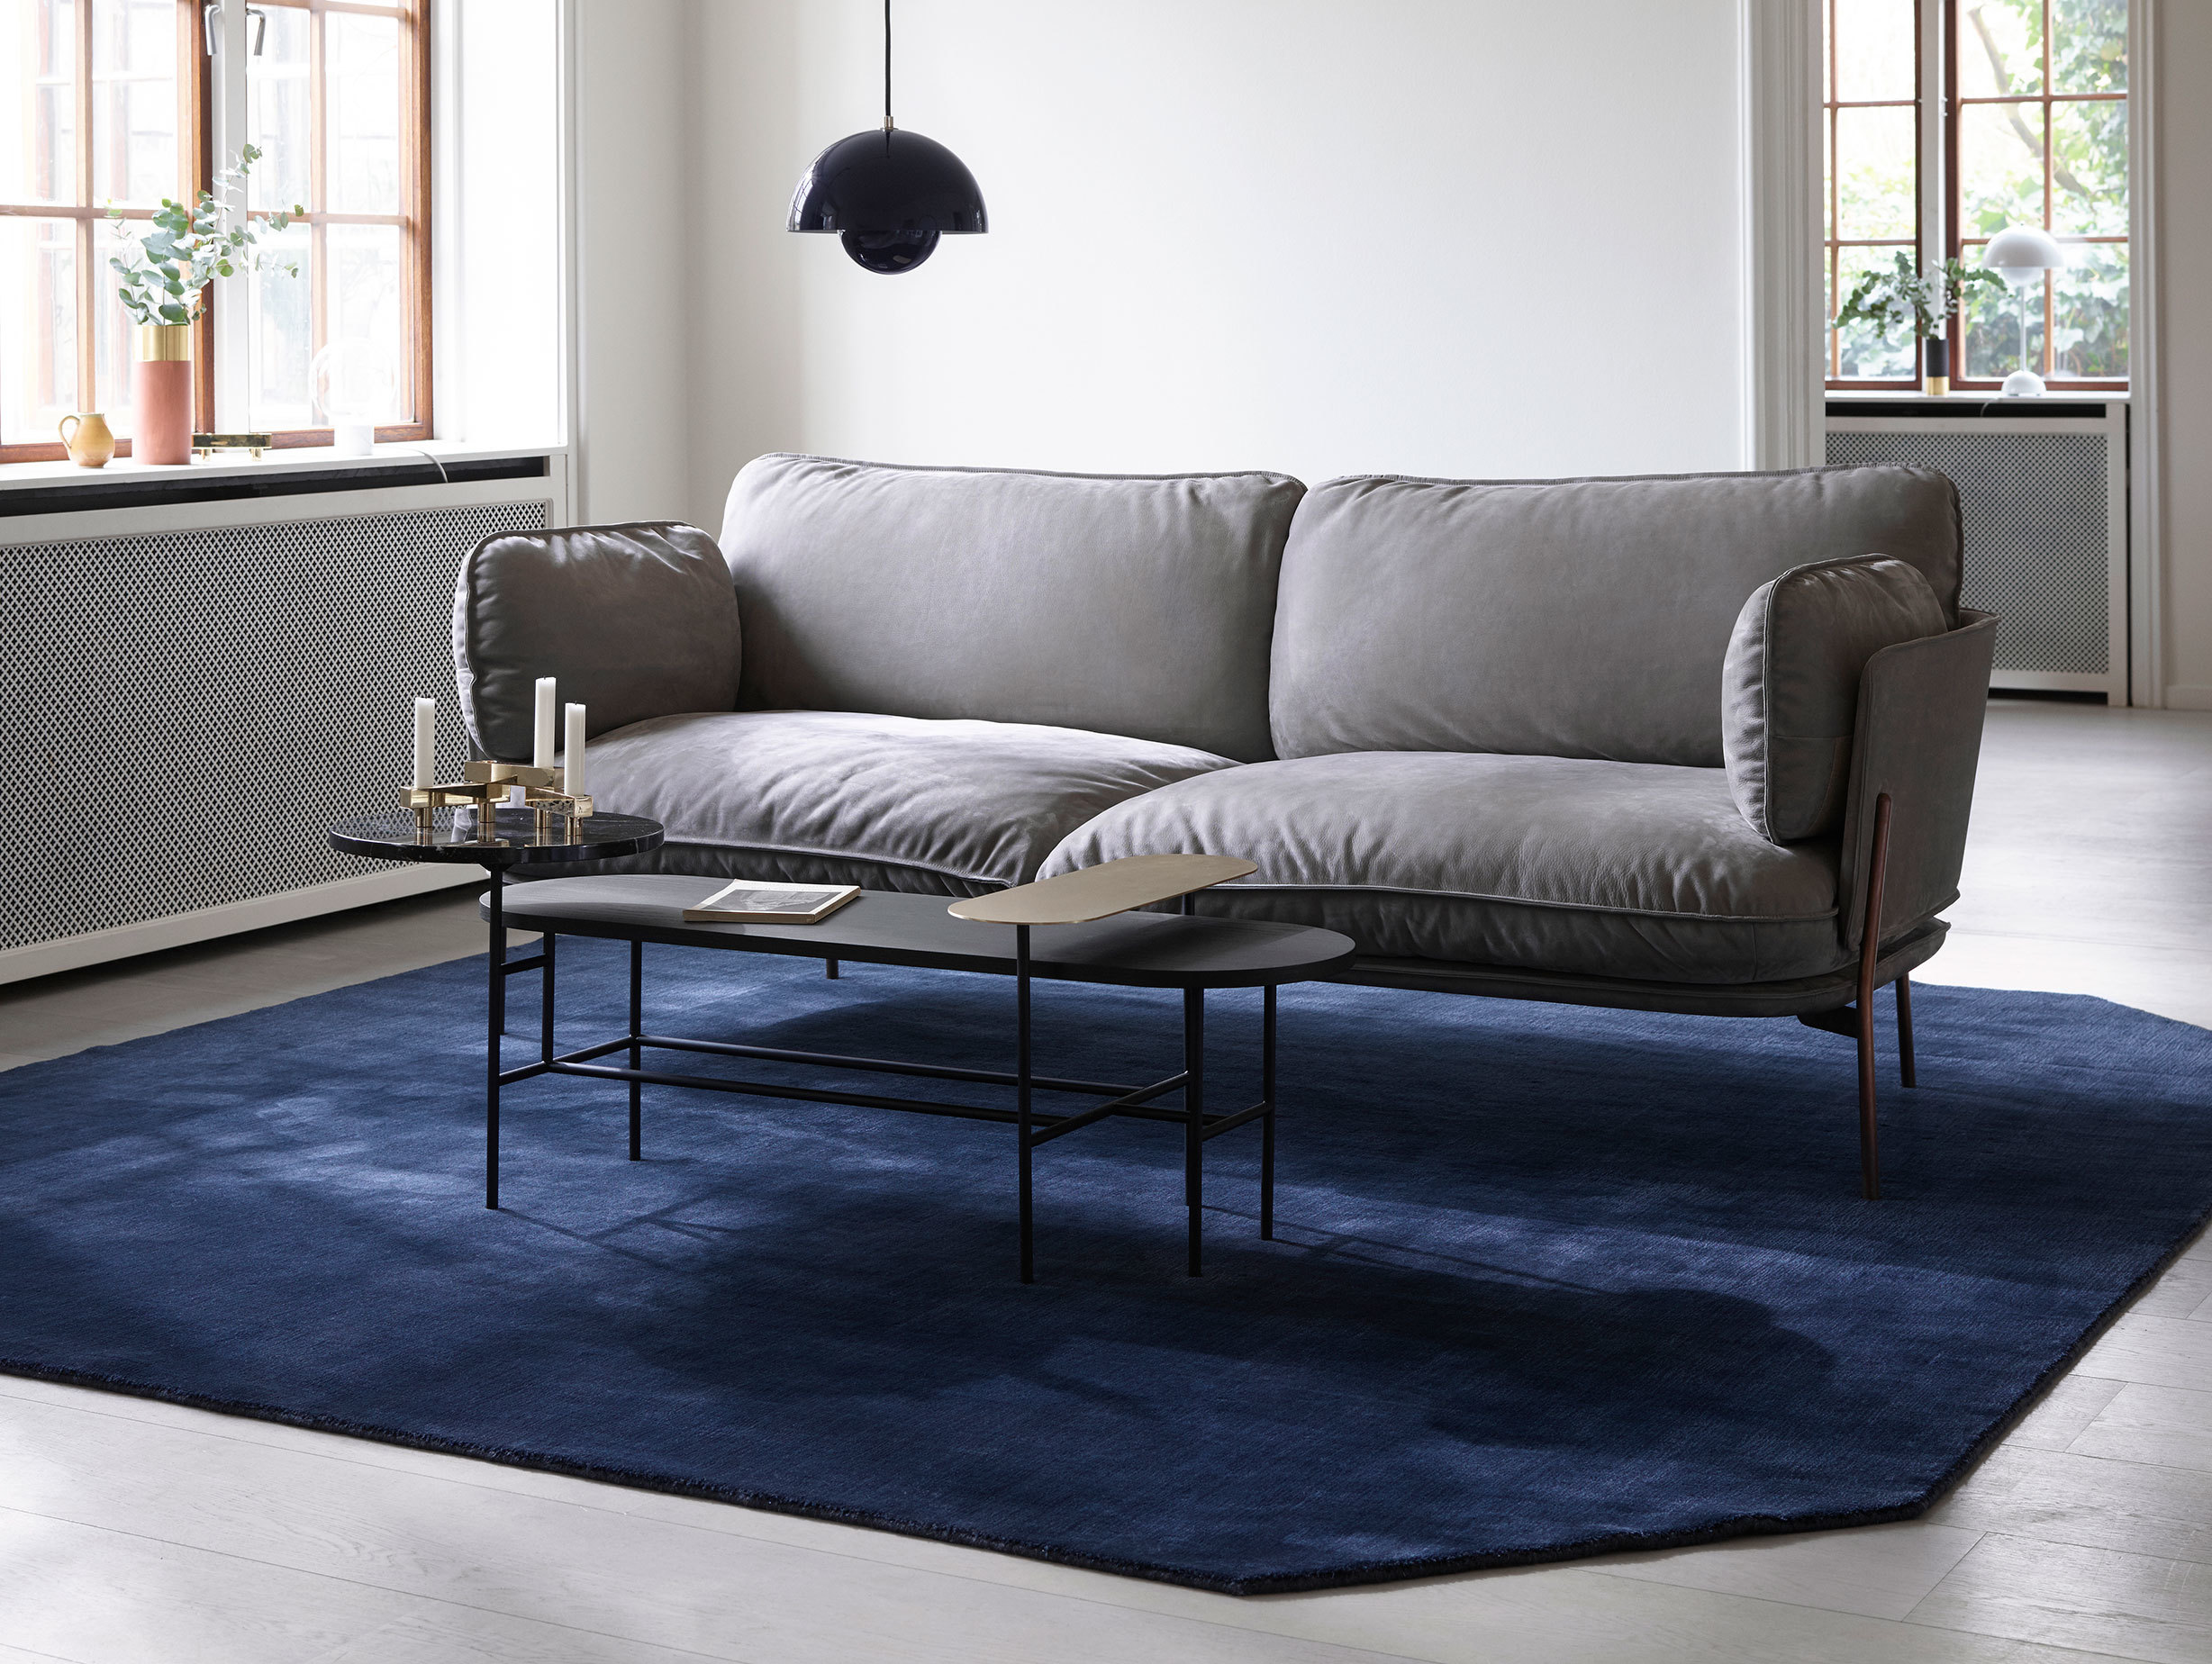 And Tradition The Moor Rug Ap8 All The Way To Paris Cloud Sofa